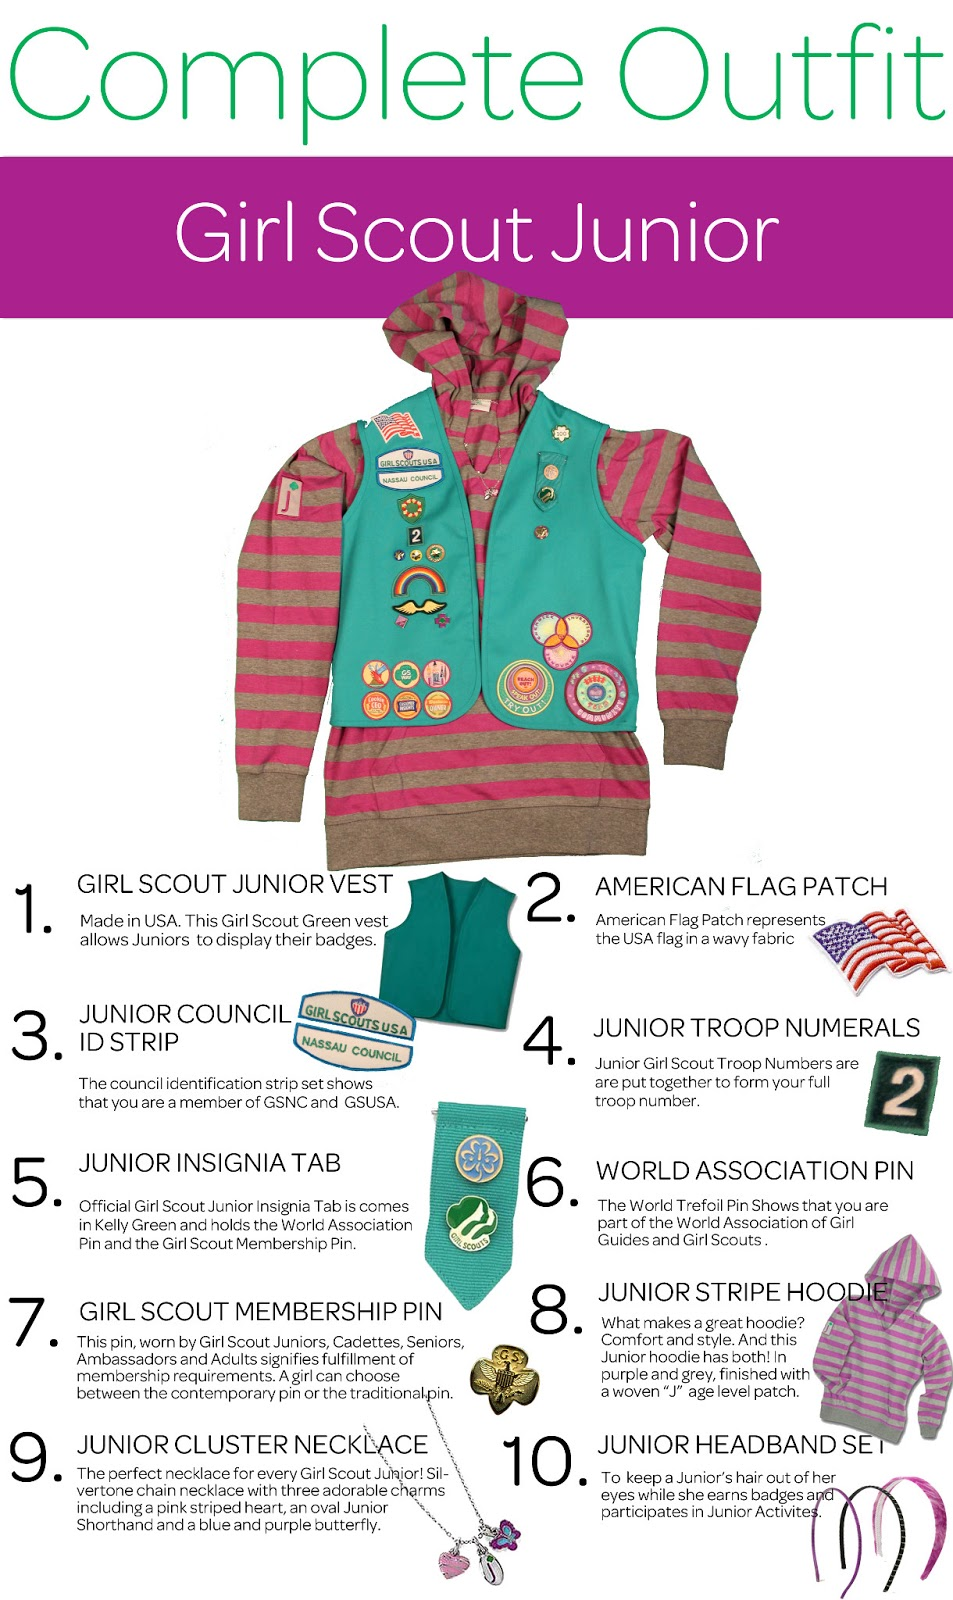 Girl Scout Cookie Nail Art: Girl Scouts Of Nassau County: The Complete Outfit Series